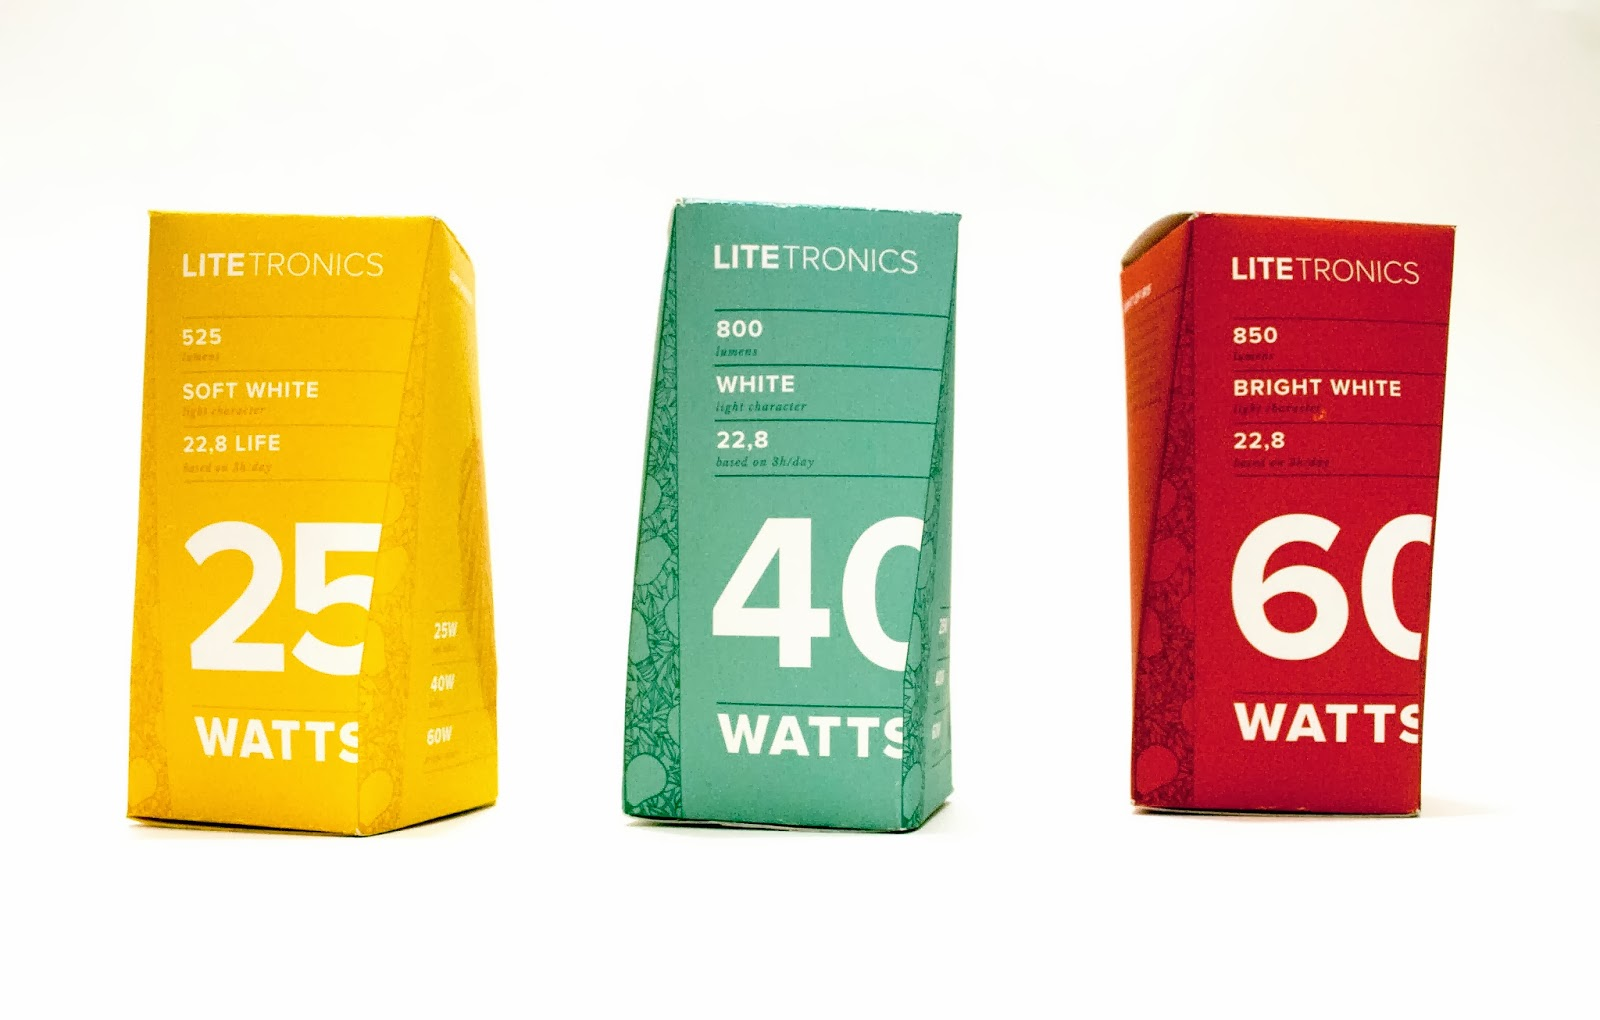 Litetronics Light Bulb Packaging Student Project On